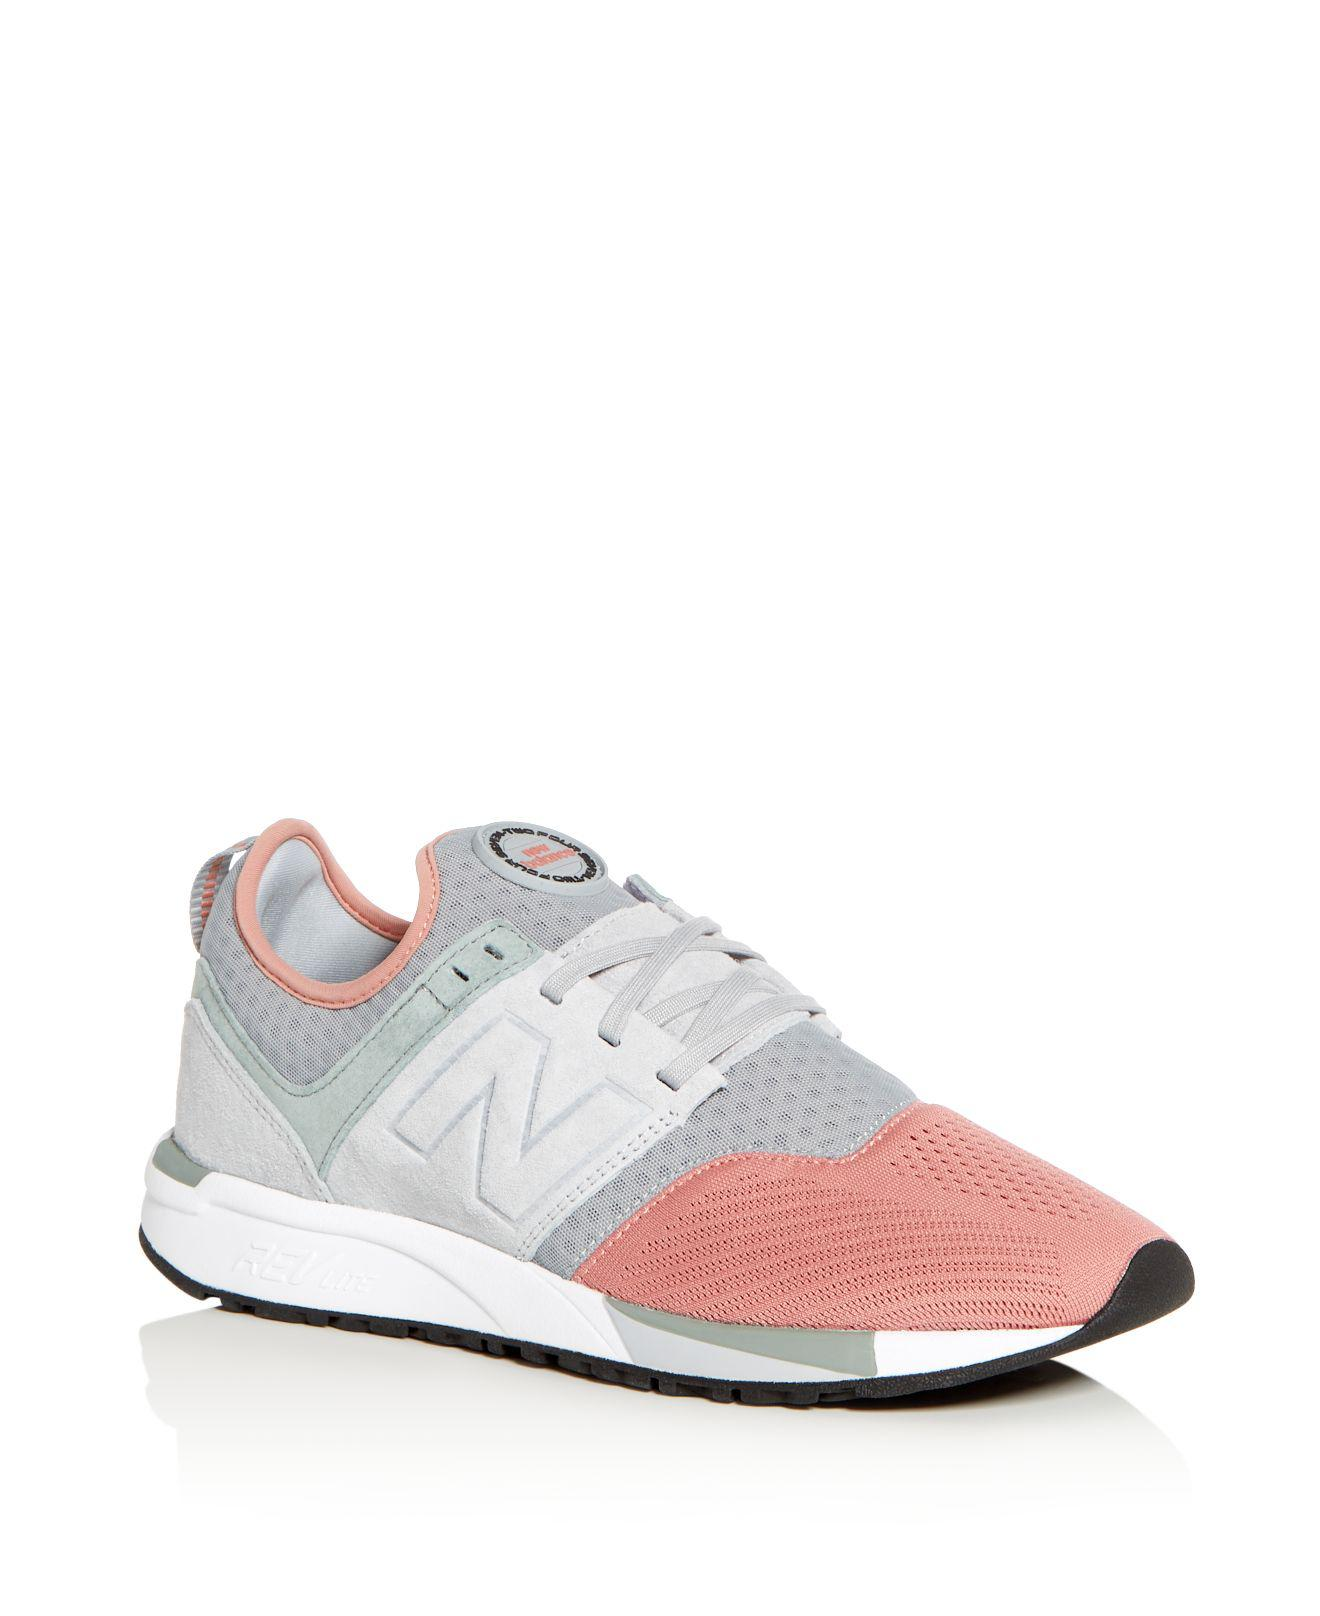 New Balance Men's 999 Classic Mixed Media Lace Up Sneakers mPKb1Lo